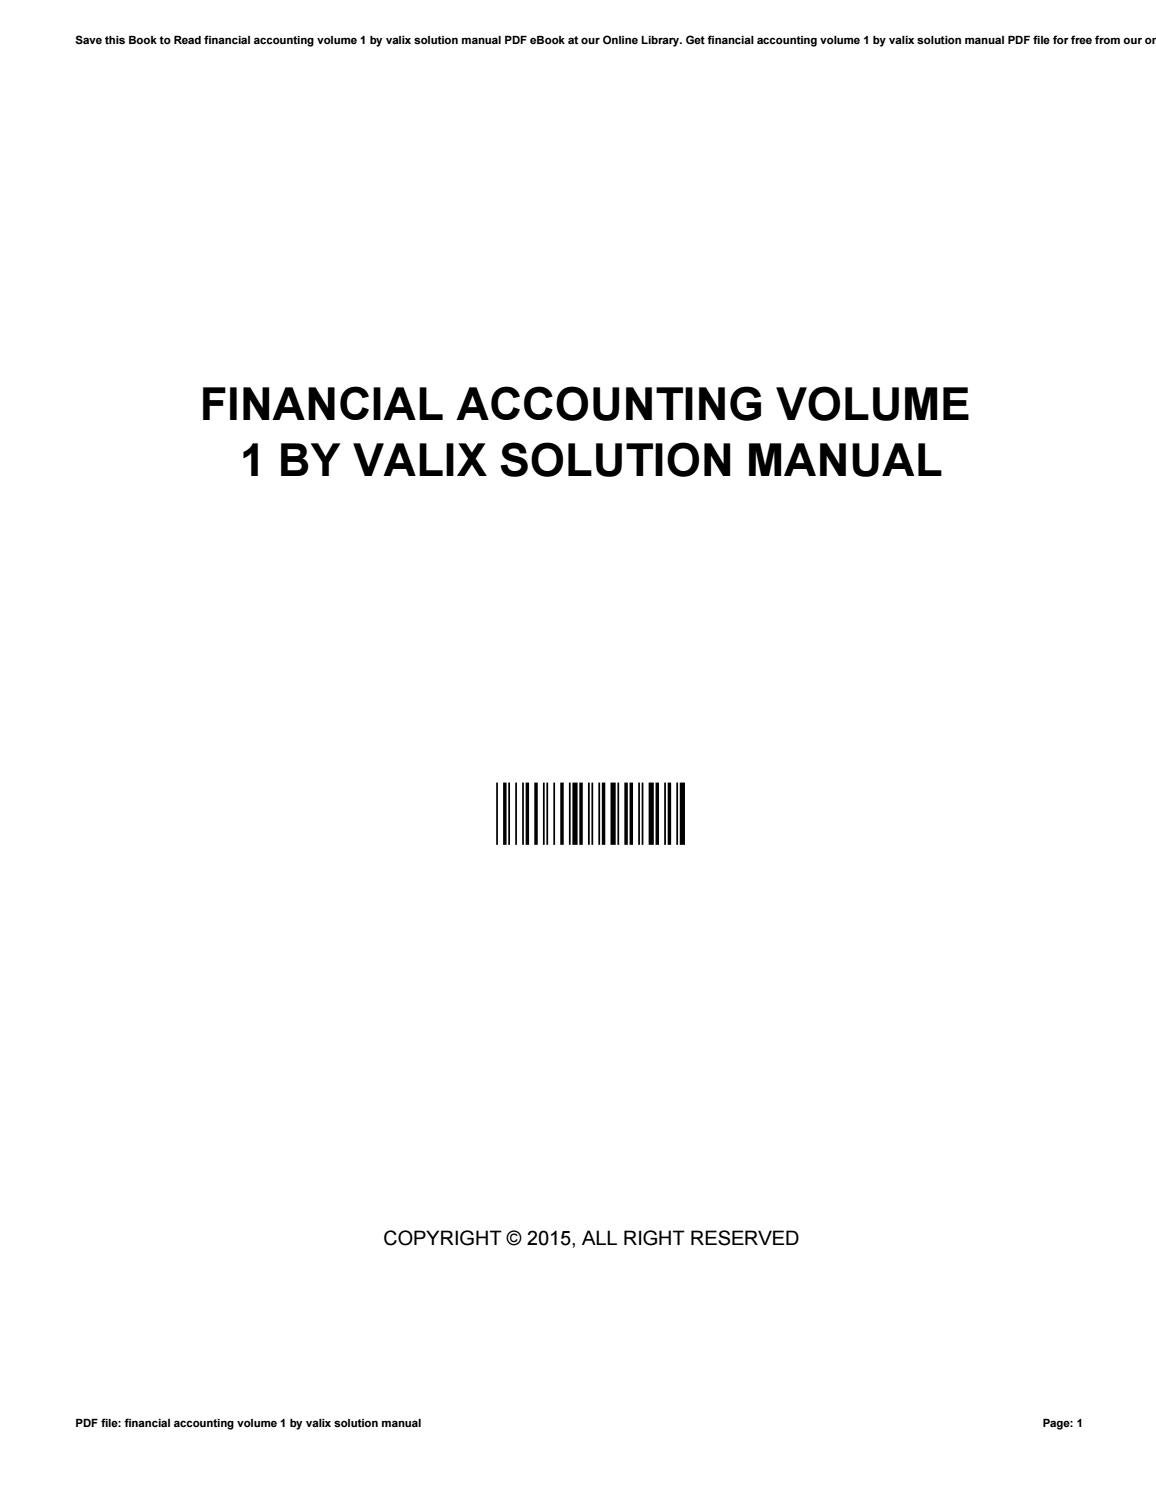 Financial accounting volume 1 by valix solution manual by JohnKeesee4072 -  issuu